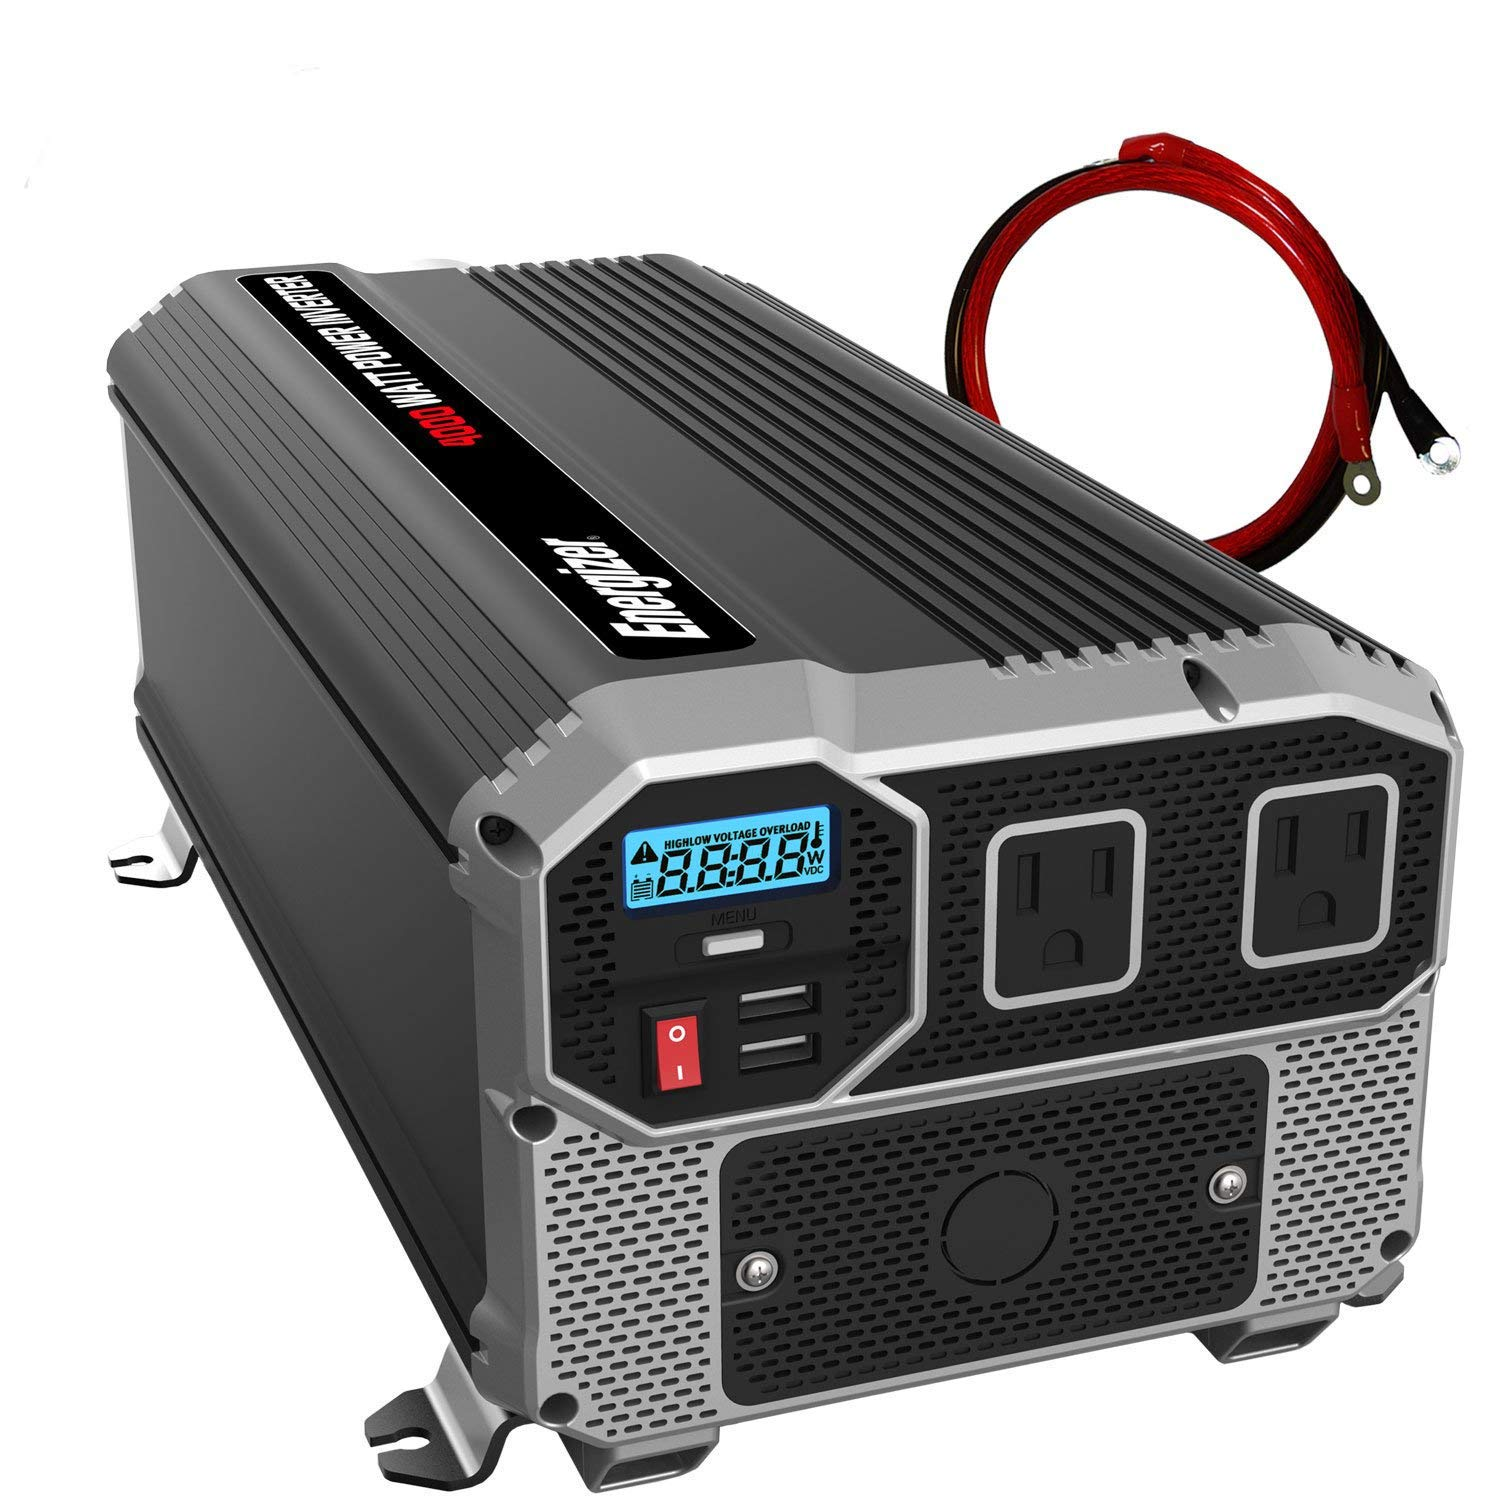 ENERGIZER 4000 Watt 12V Power Inverter, Dual 110V AC Outlets, Automotive Back Up Power Supply Car Inverter, Converts 120 Volt AC with 2 USB Ports 2.4A Each